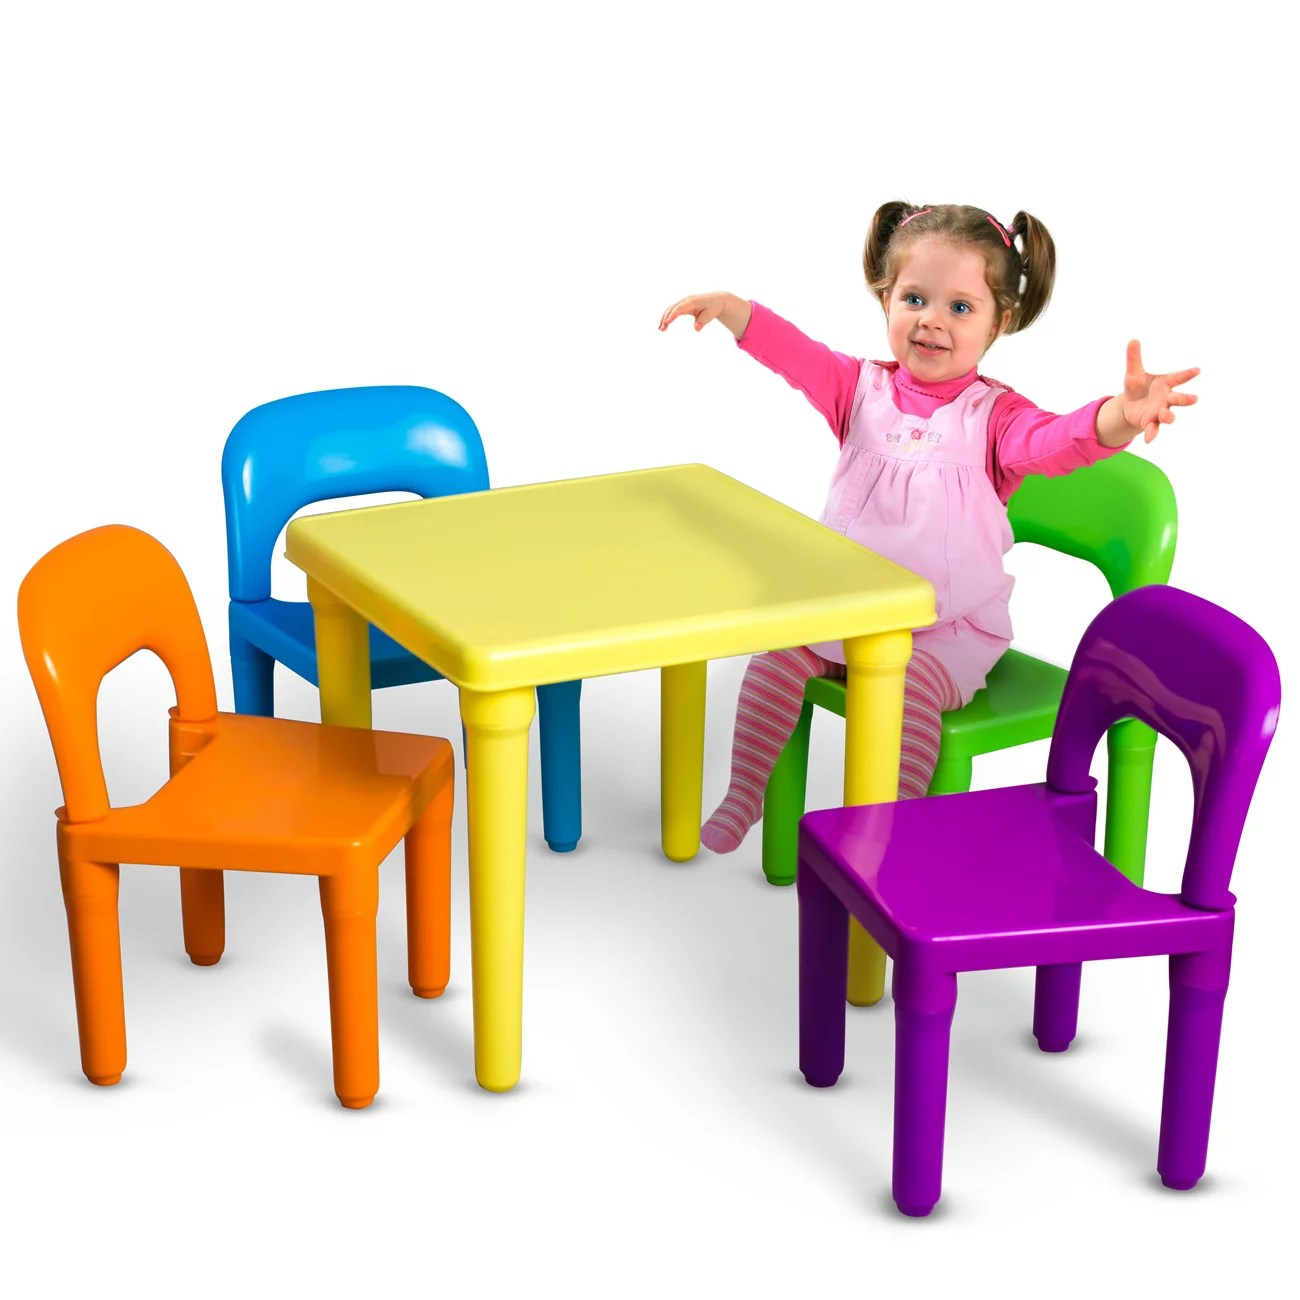 Childrens Table And Chair Set Oxgord Kids Table And Chairs Play Set For Toddler Child Toy Activity Furniture Indoor Or Outdoor